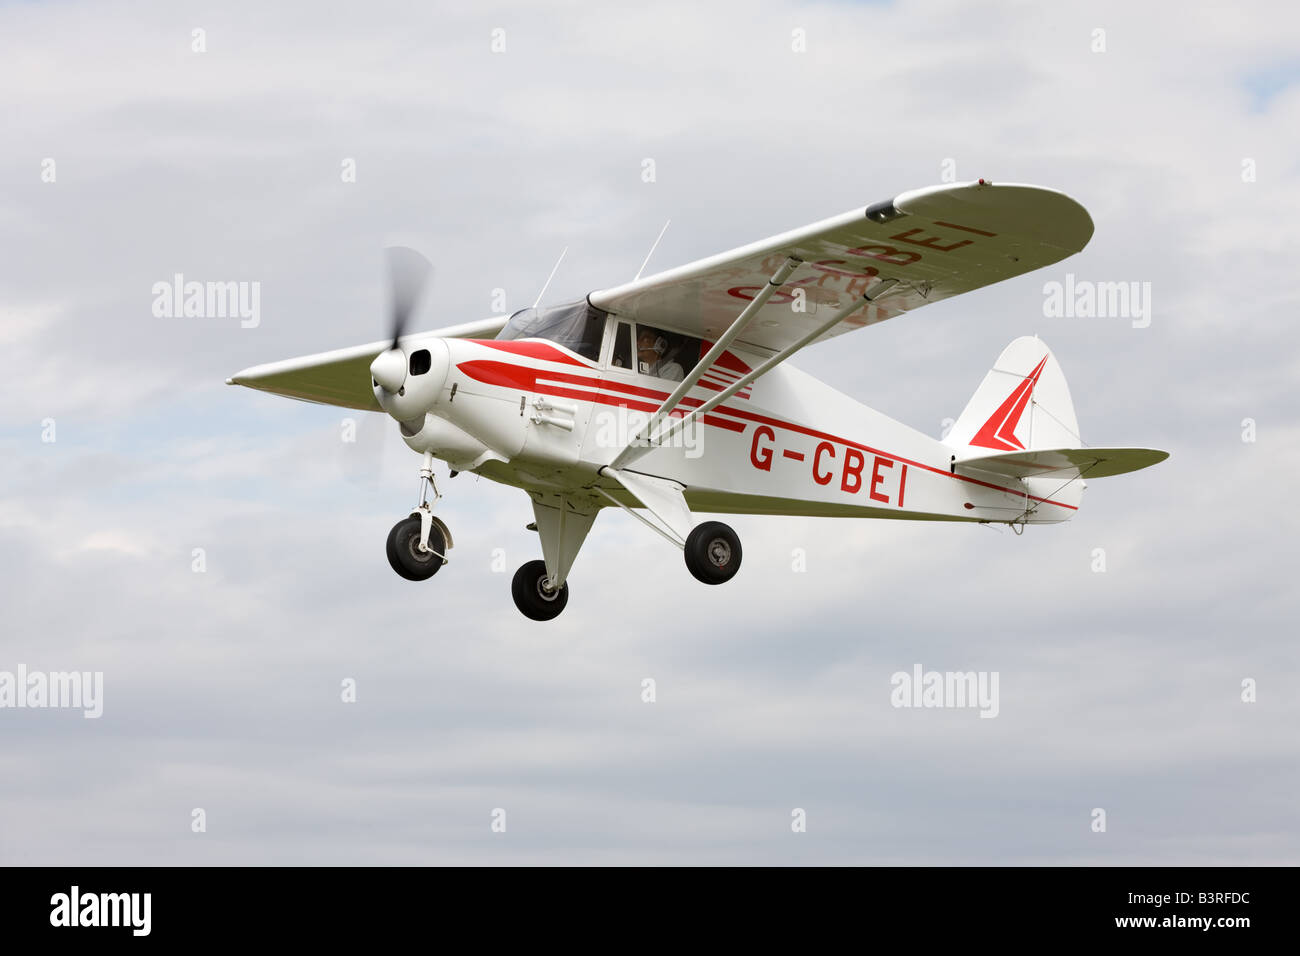 Piper PA-22-108 Colt G-CBEI in flight at Breighton Airfield Stock